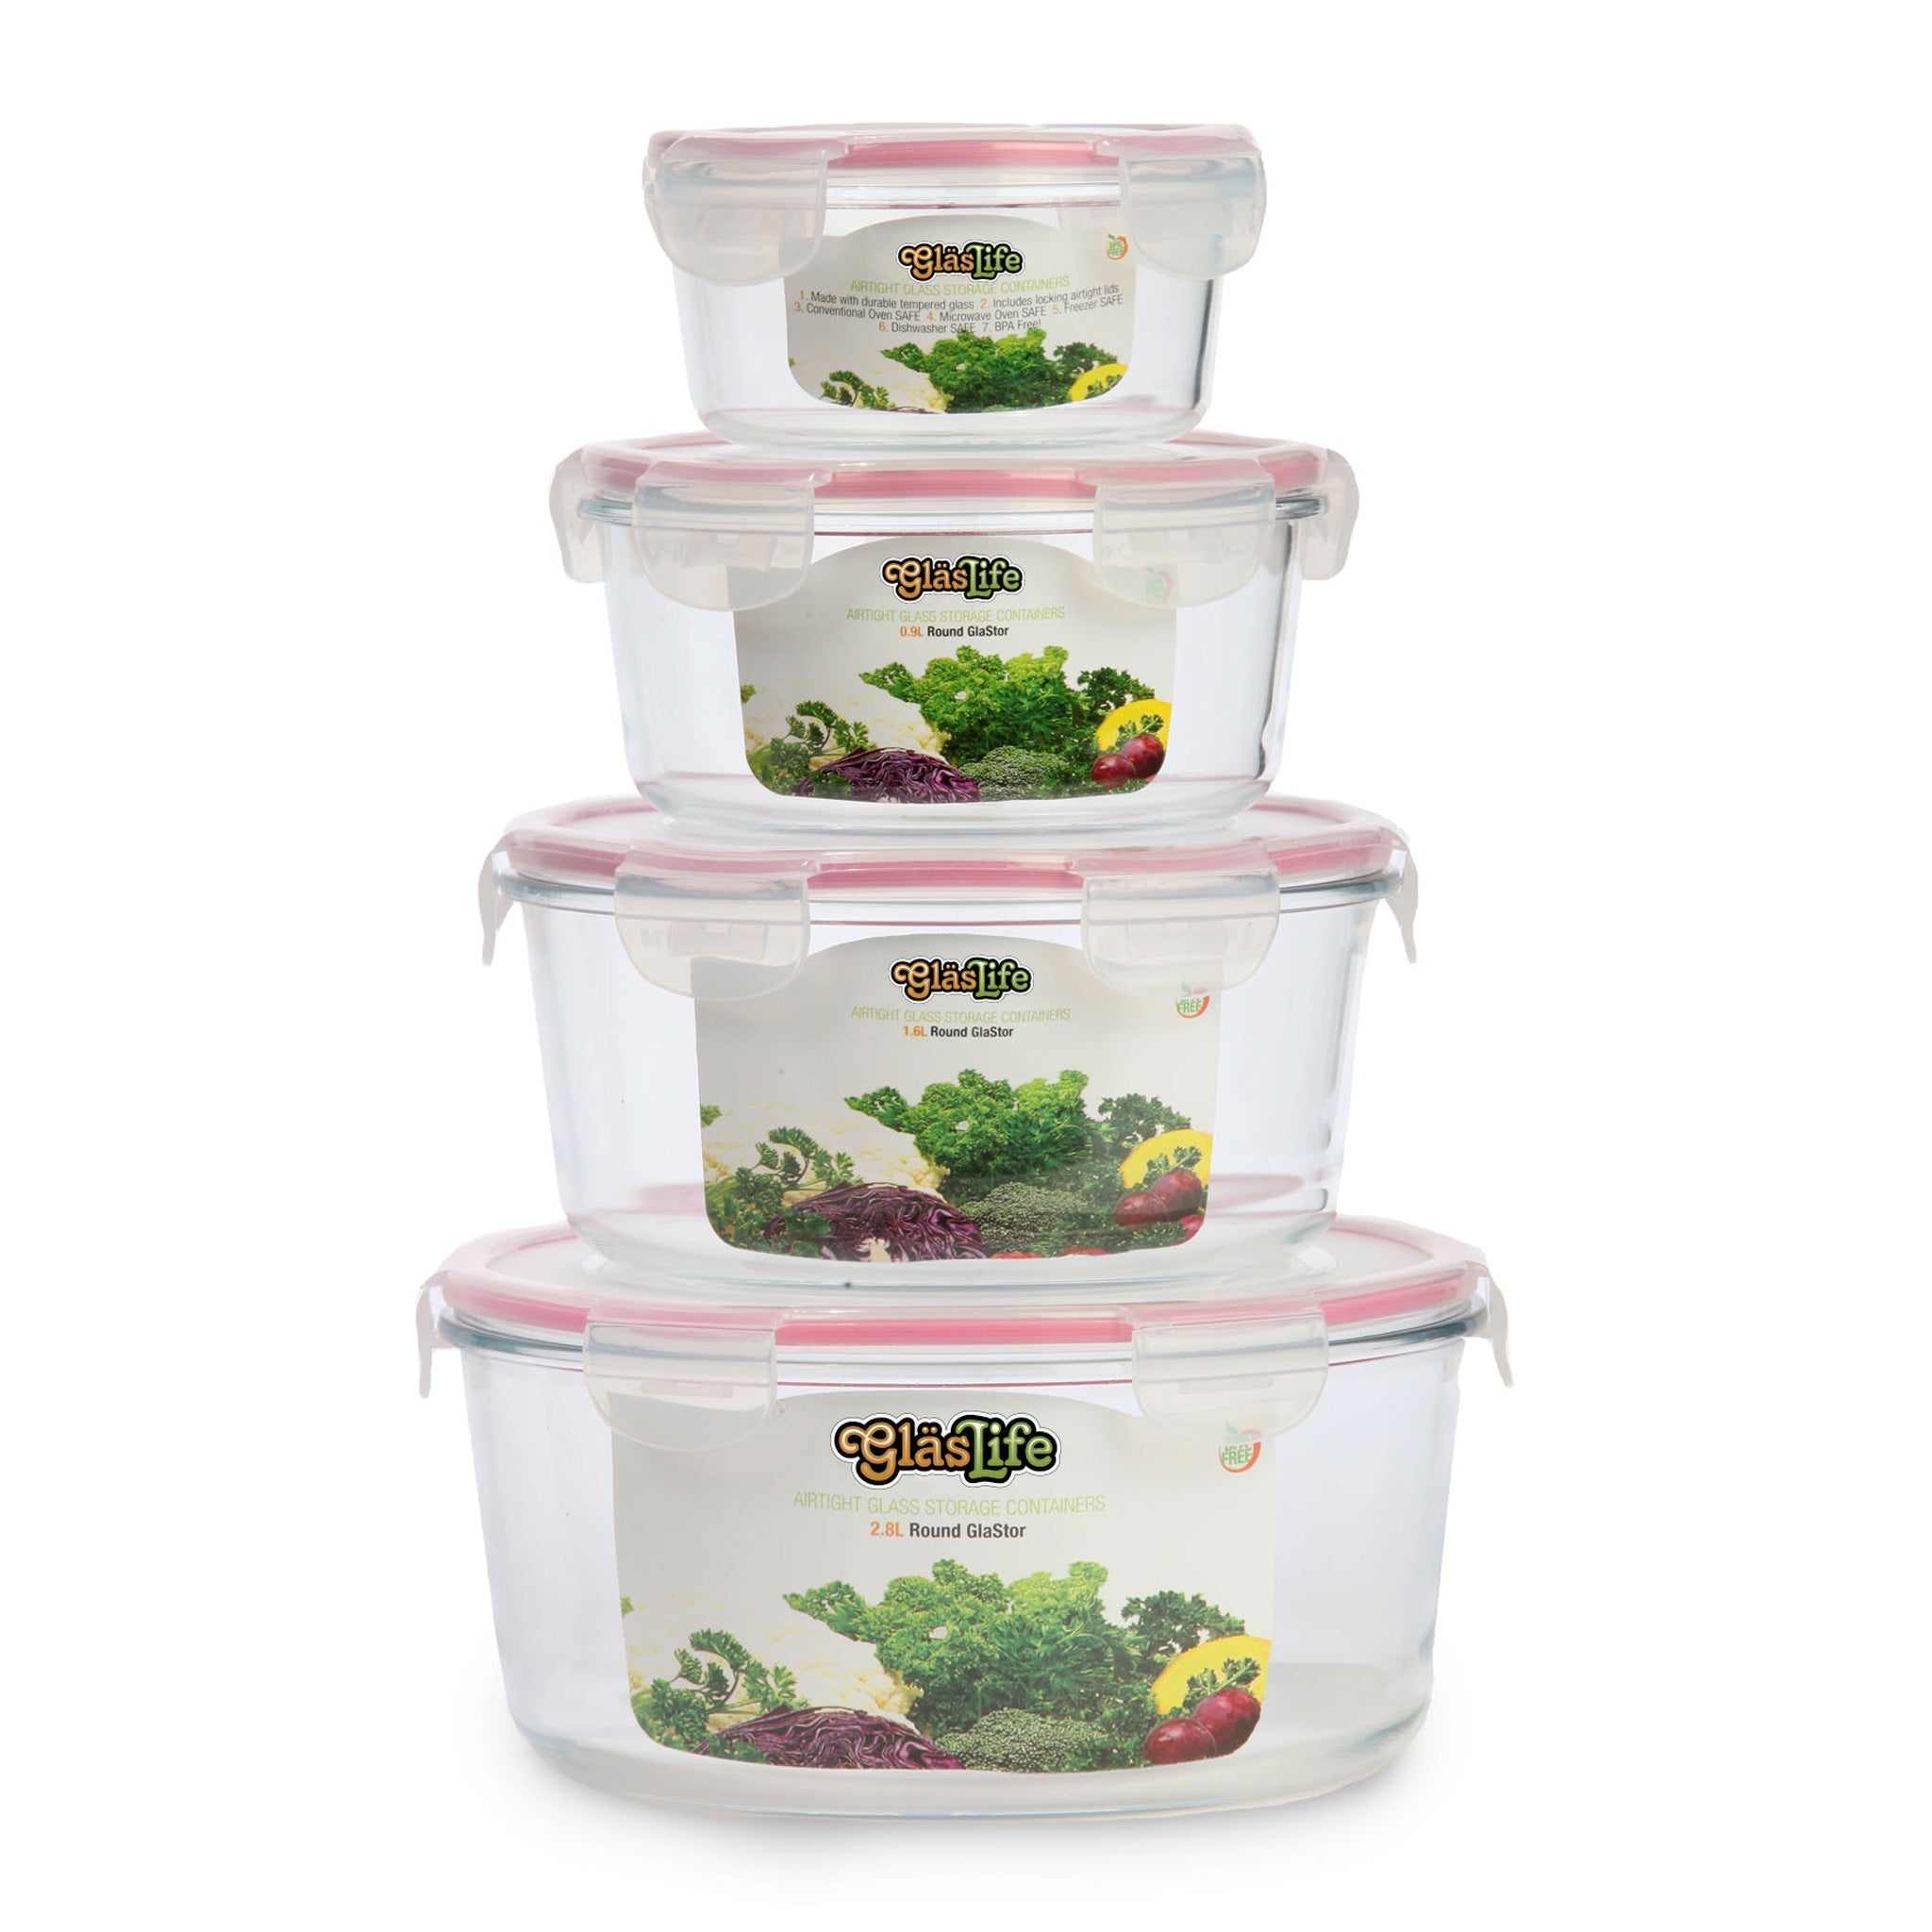 GlasLife® Air-Tight Glass Storage Container - Round GLC04SN 4-Piece Set